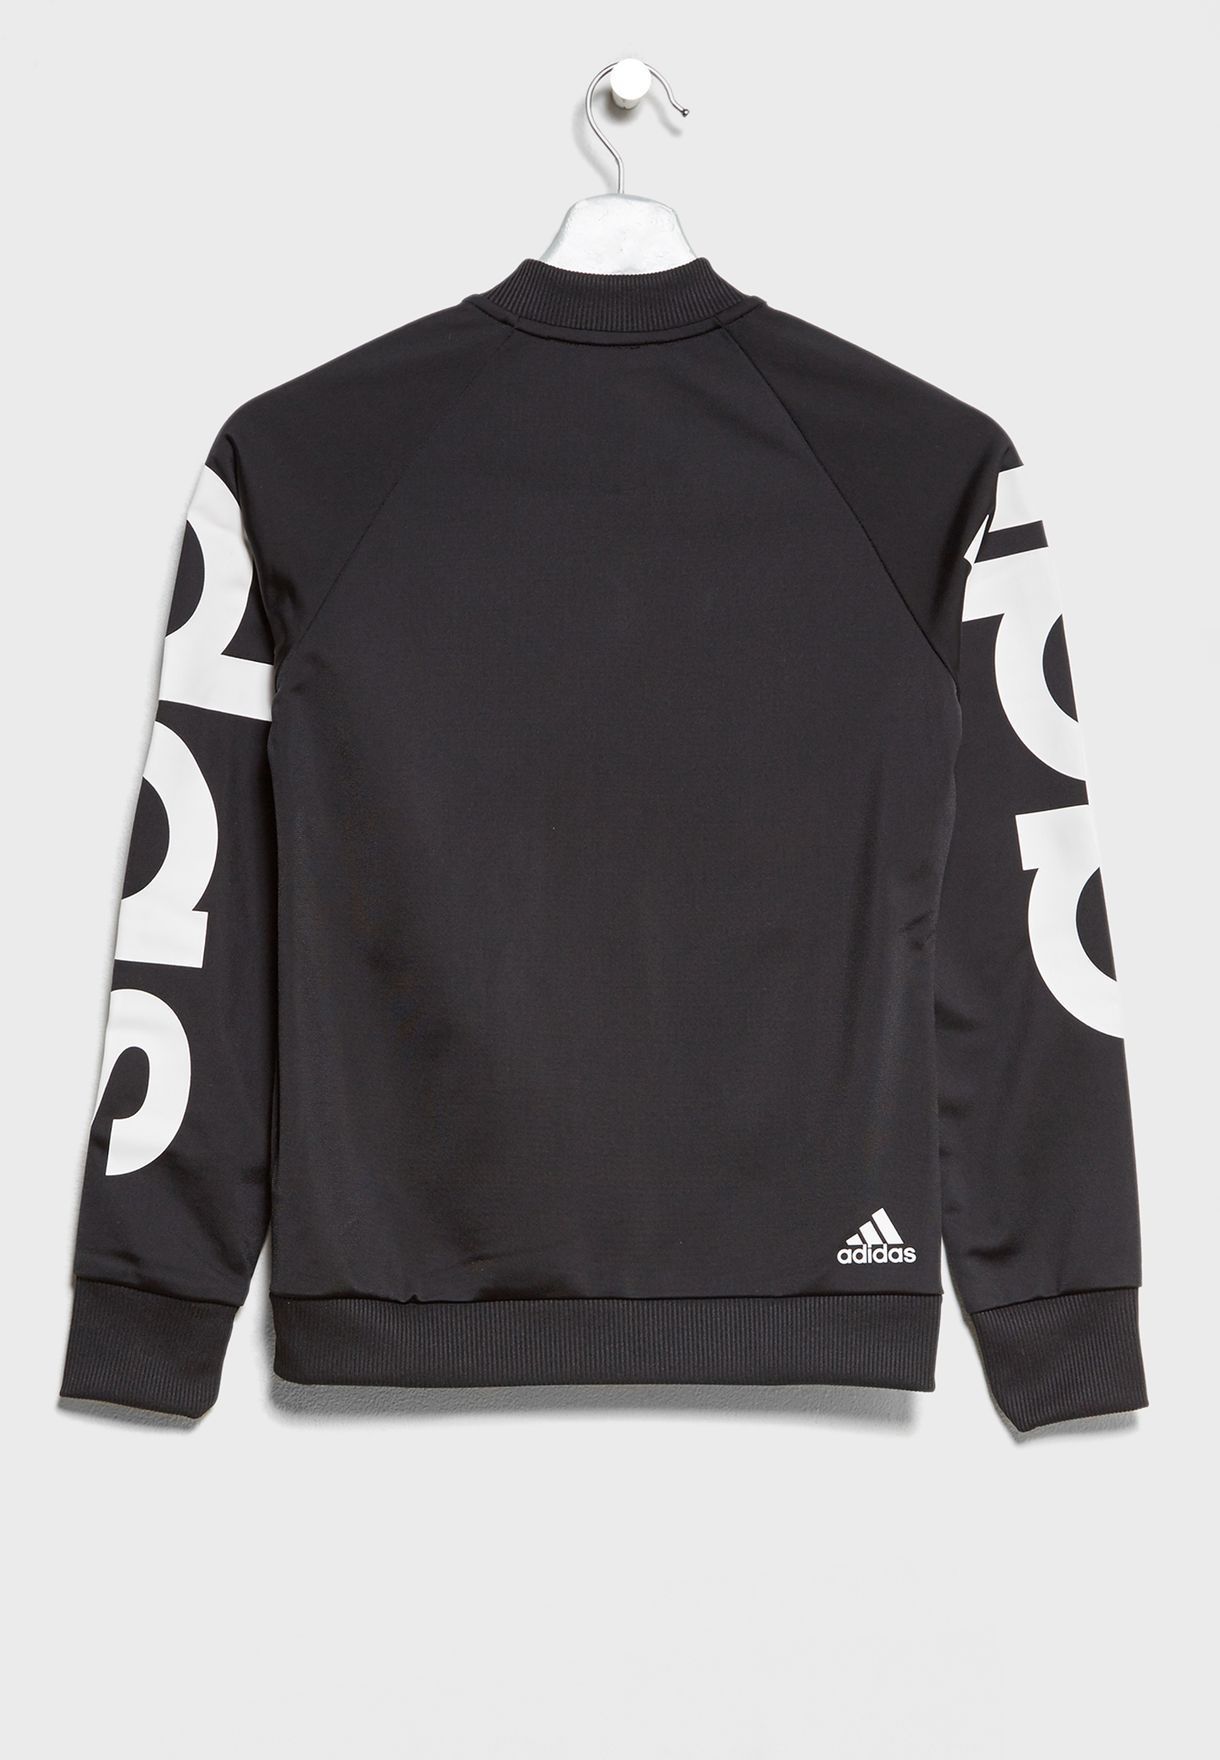 ristorante grandinare Alzati invece  Buy adidas black Youth Linear Tracksuit for Kids in MENA, Worldwide | CF7311